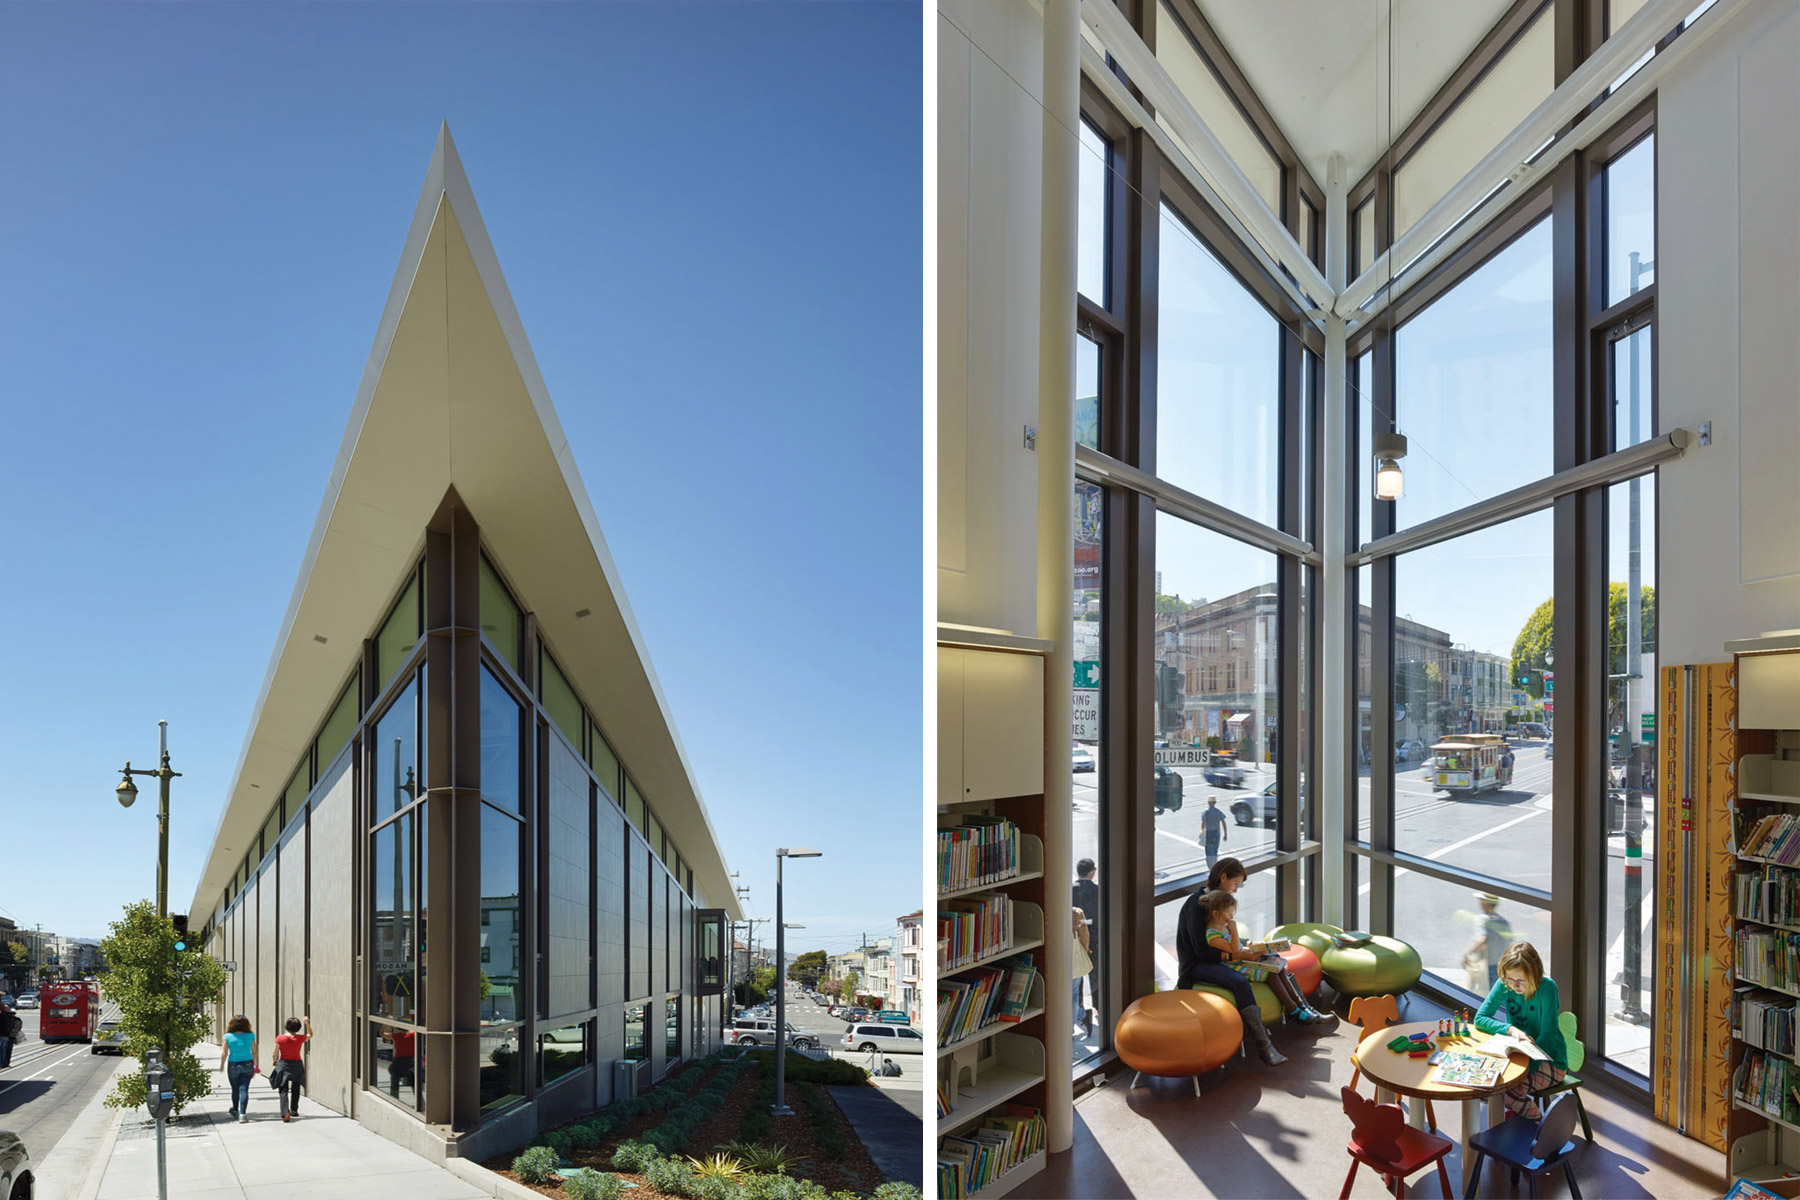 The North Beach Branch Library in San Francisco is a centerpiece for the community and, in keeping with San Francisco's commitment to a sustainable future, is certified LEED Gold.